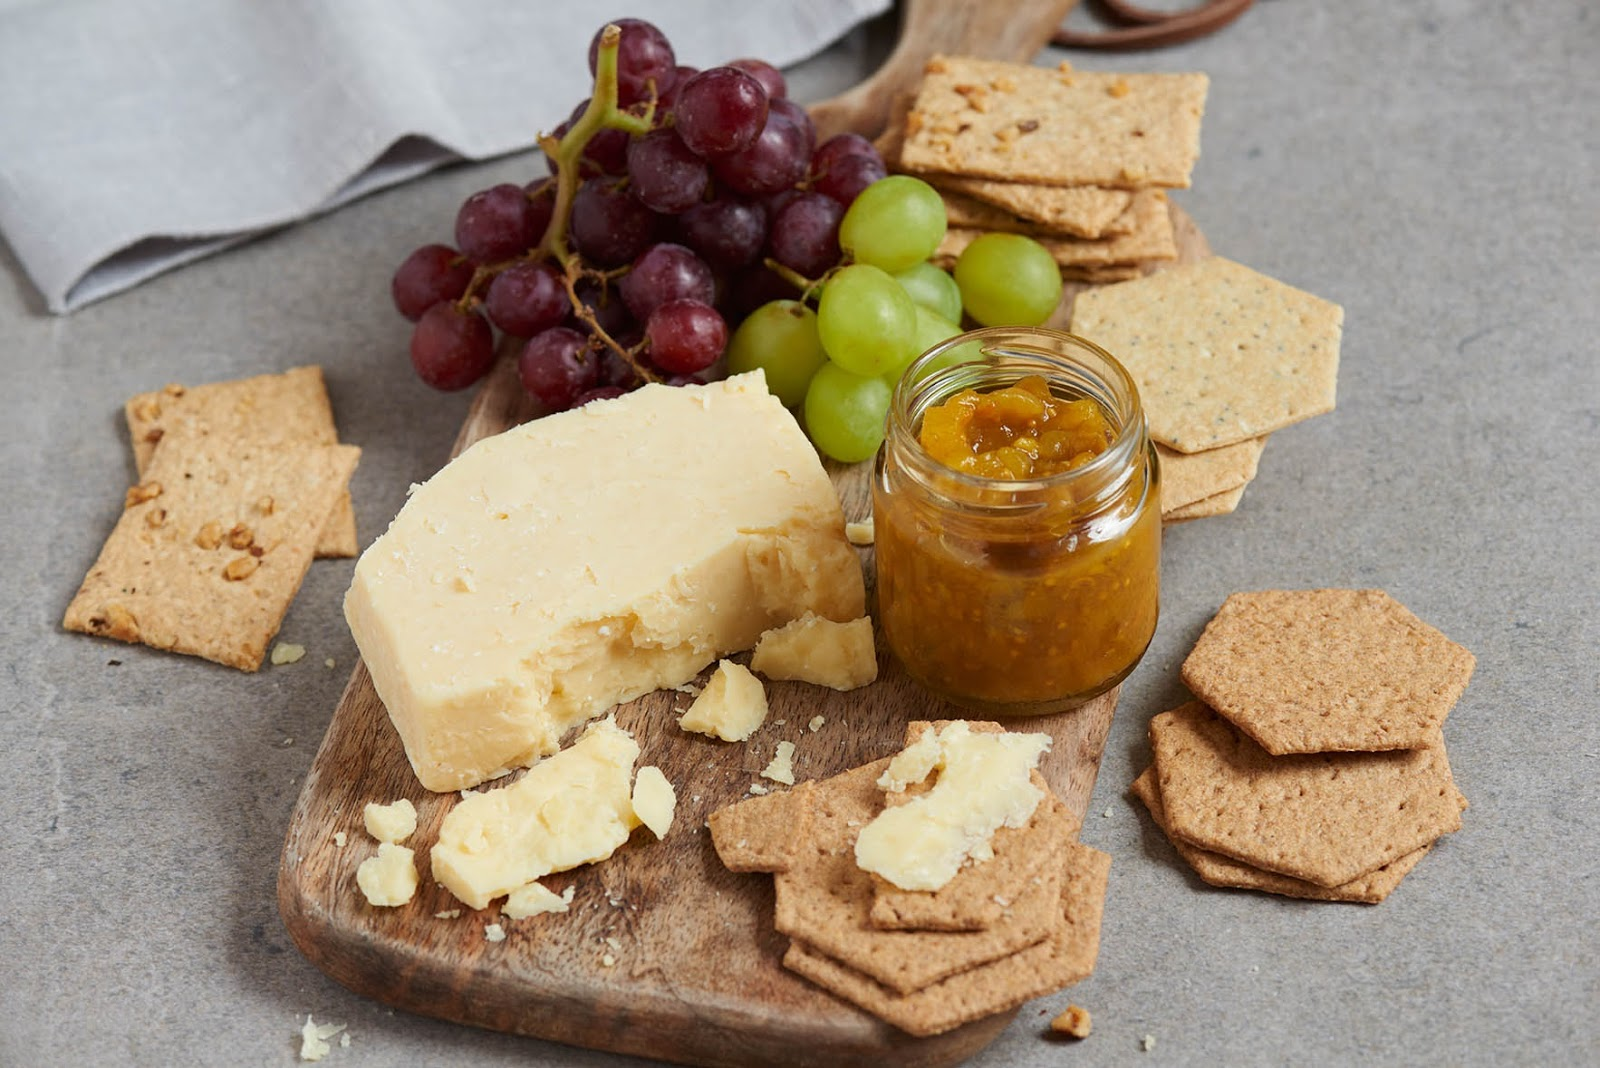 Quince, Orange And Chestnut Chutney With Davidstow® Cheddar